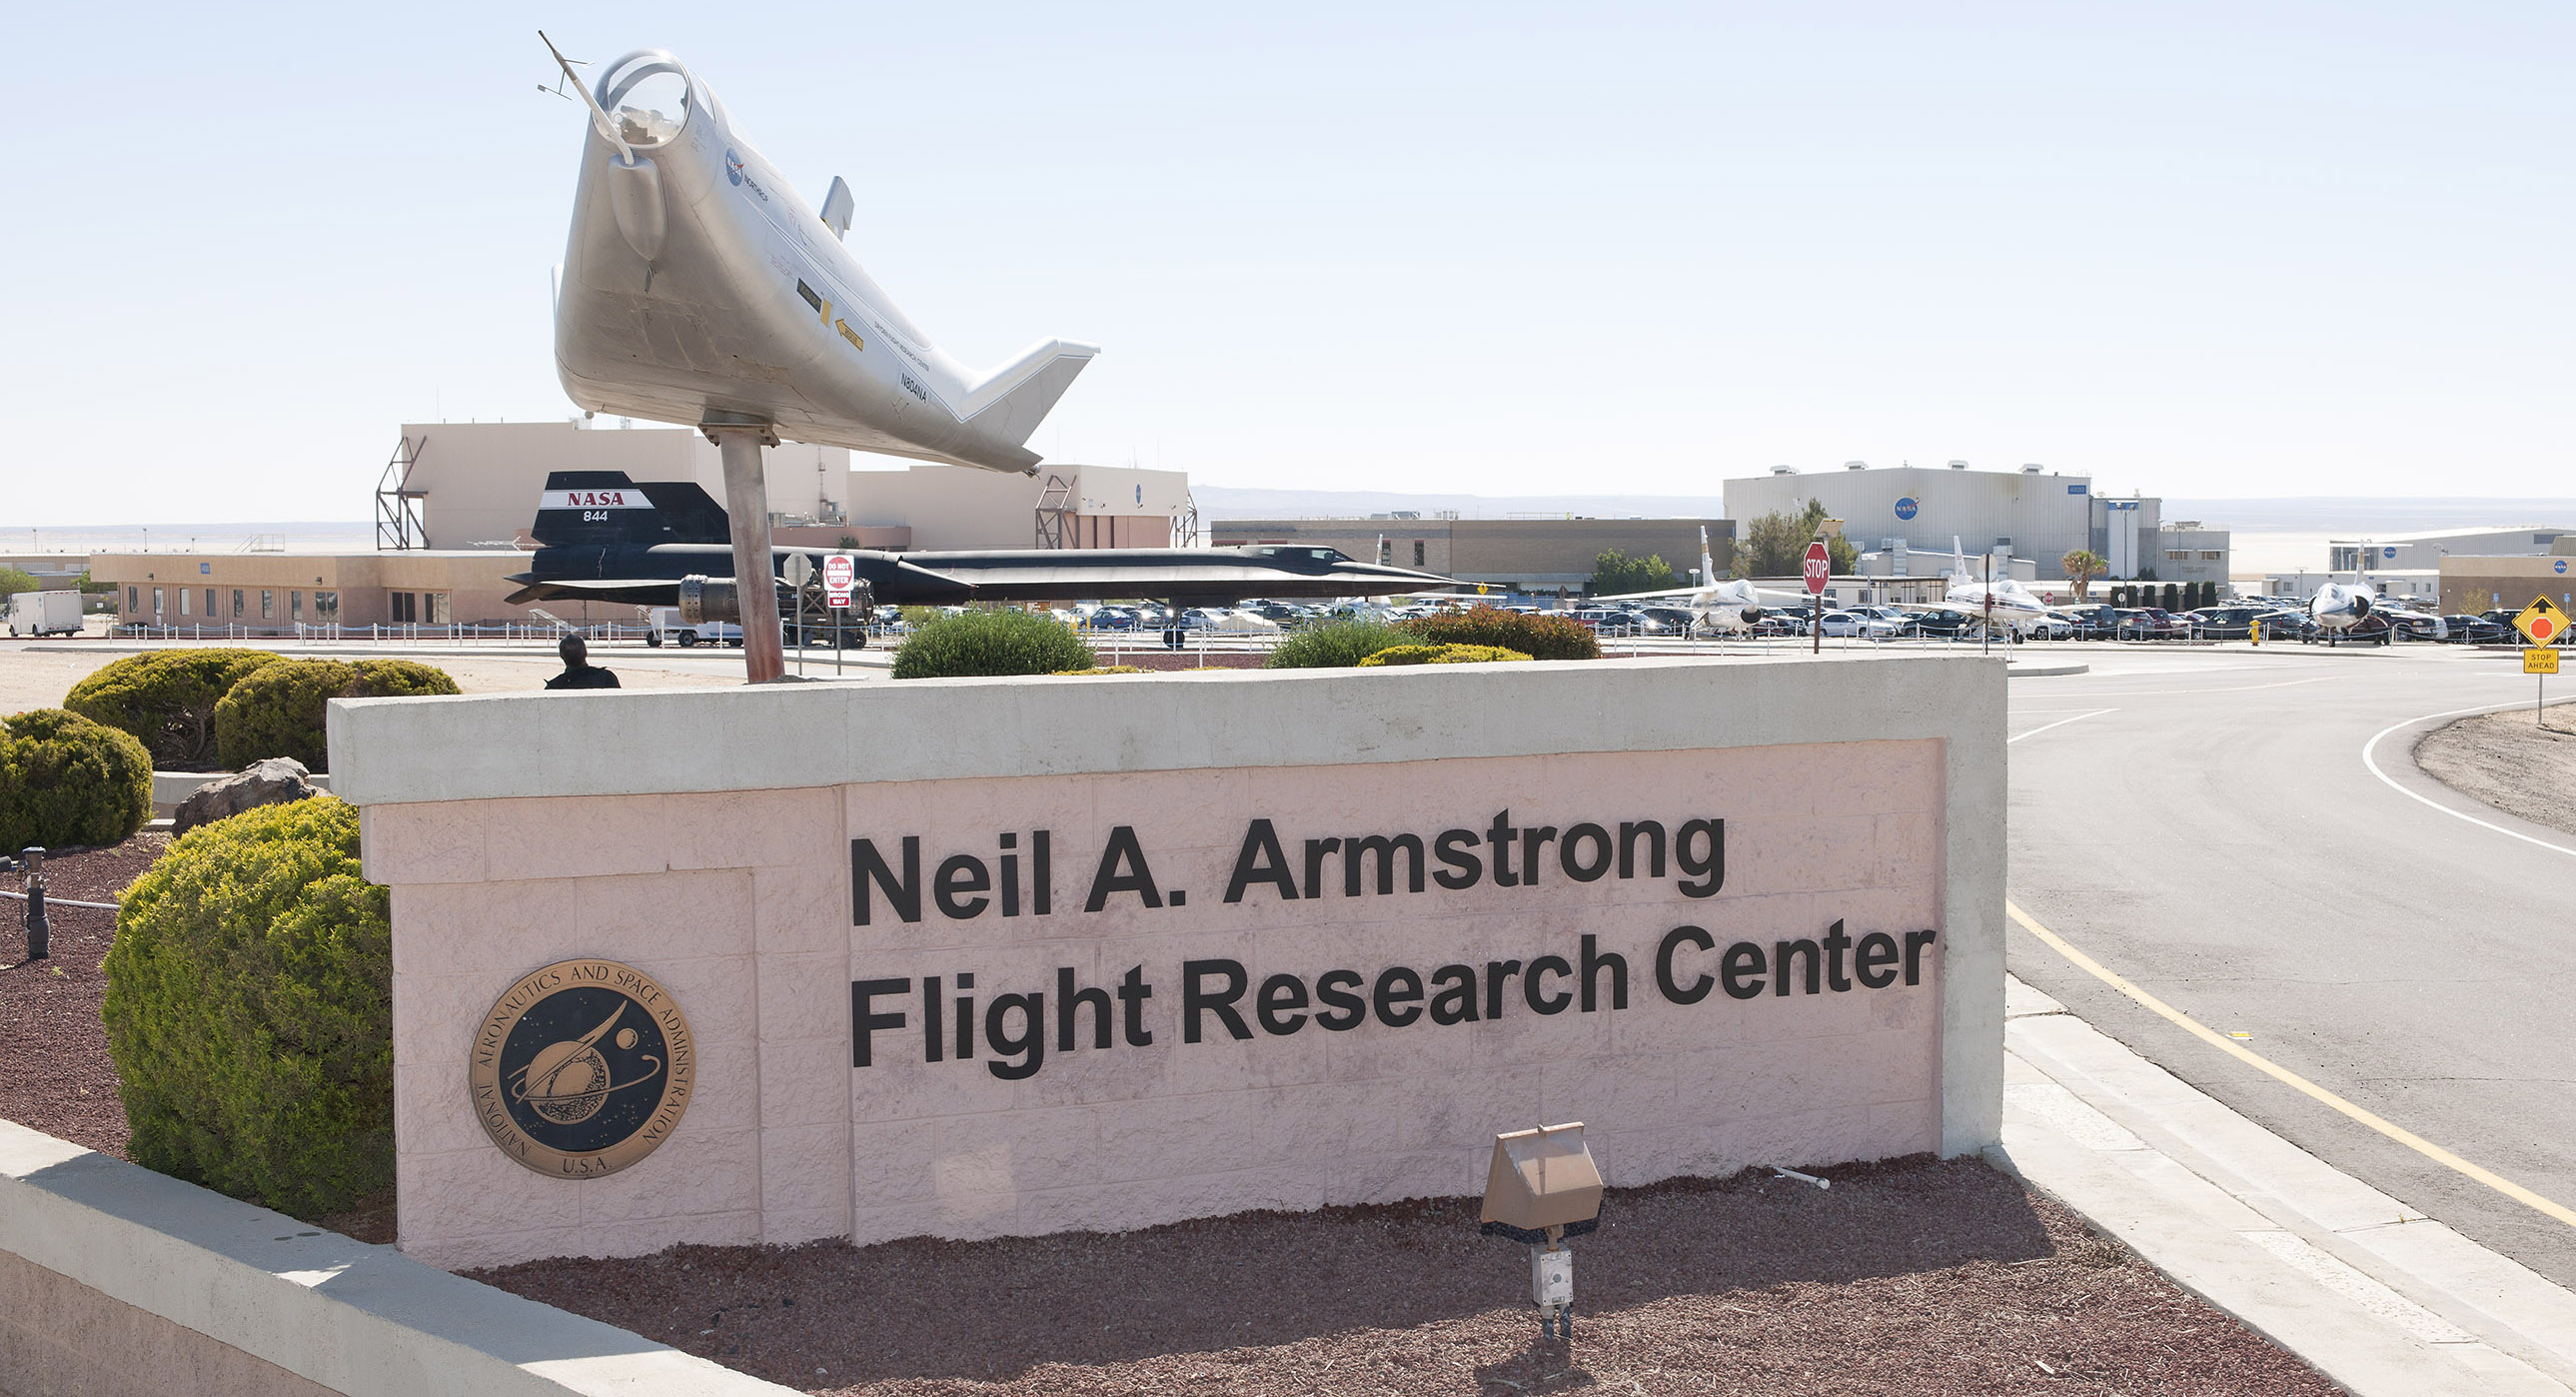 NASA Armstrong's New Signs: What's in a Name? | NASA